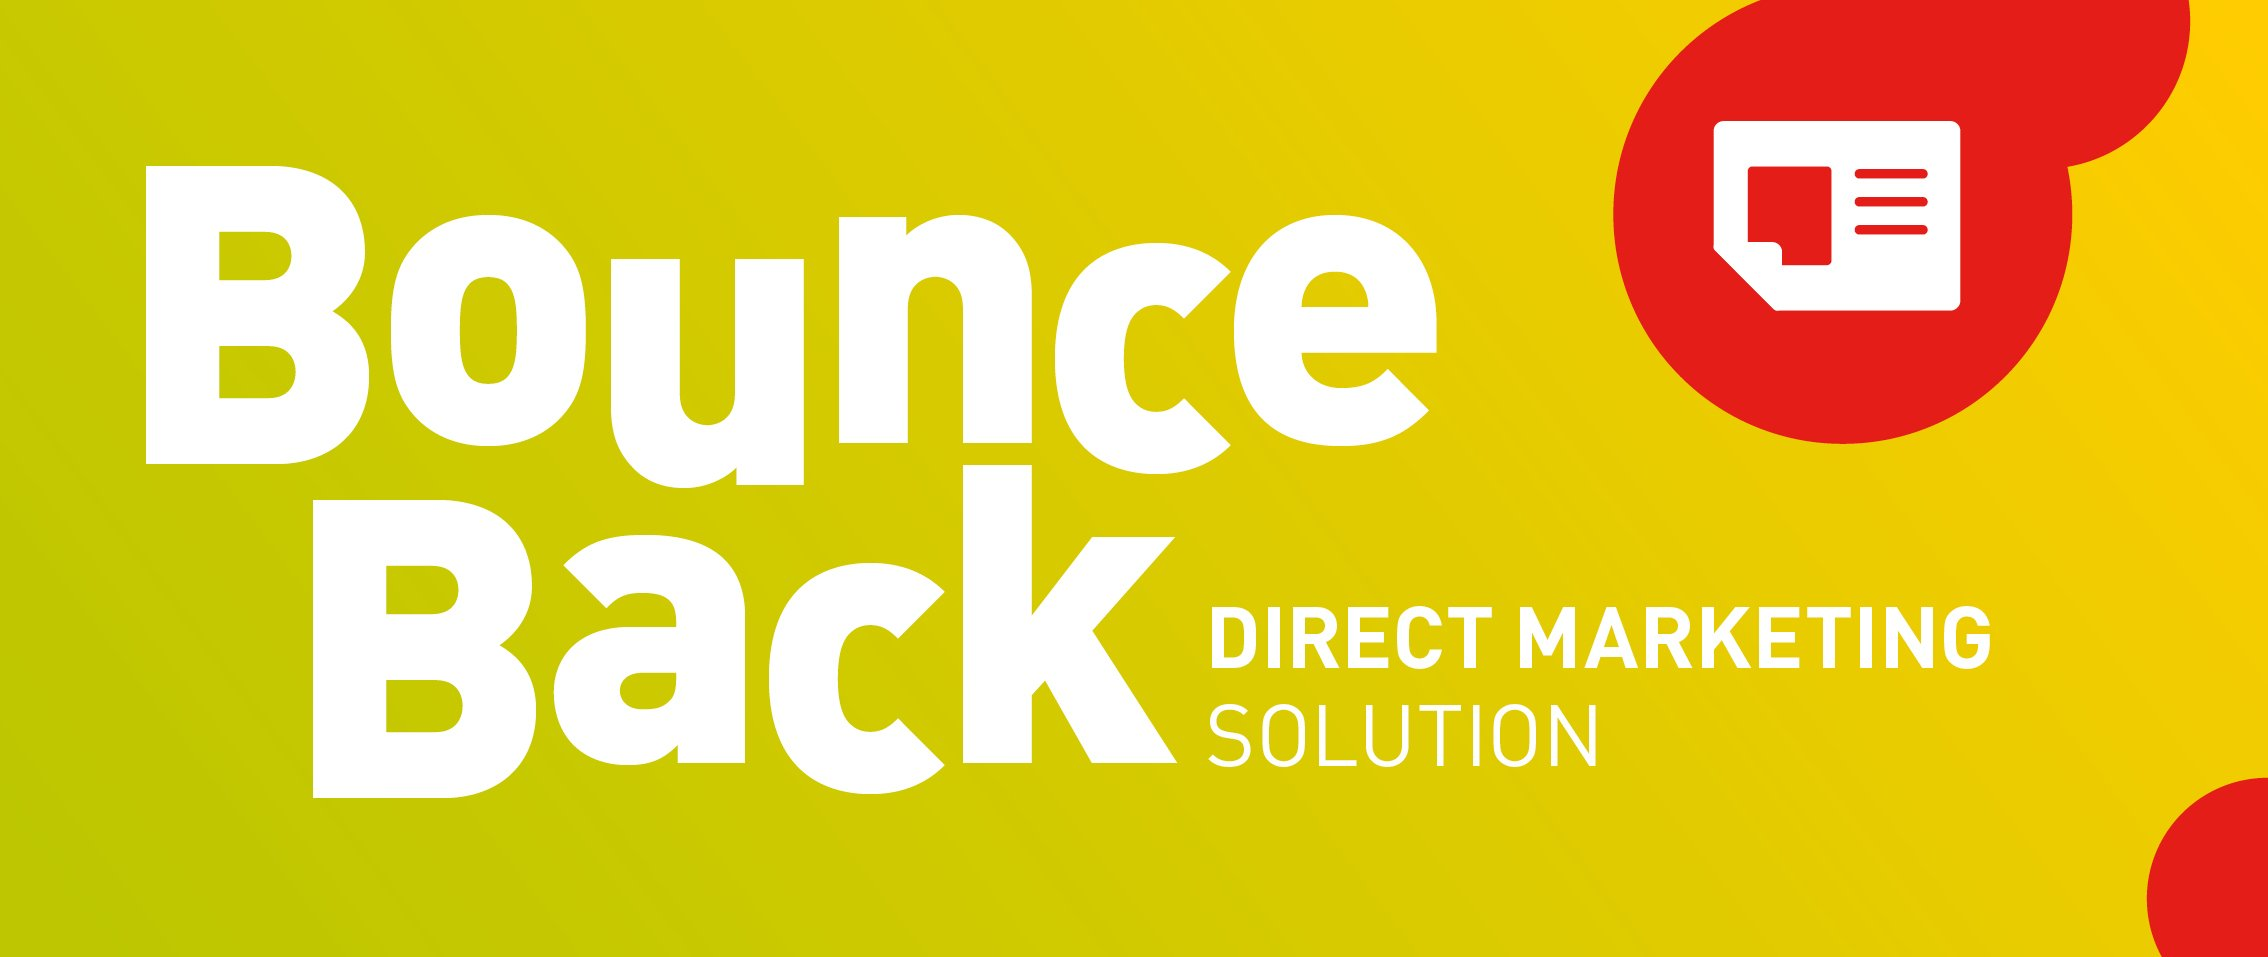 Your Telemarketing Bounce Back Direct Marketing Solution